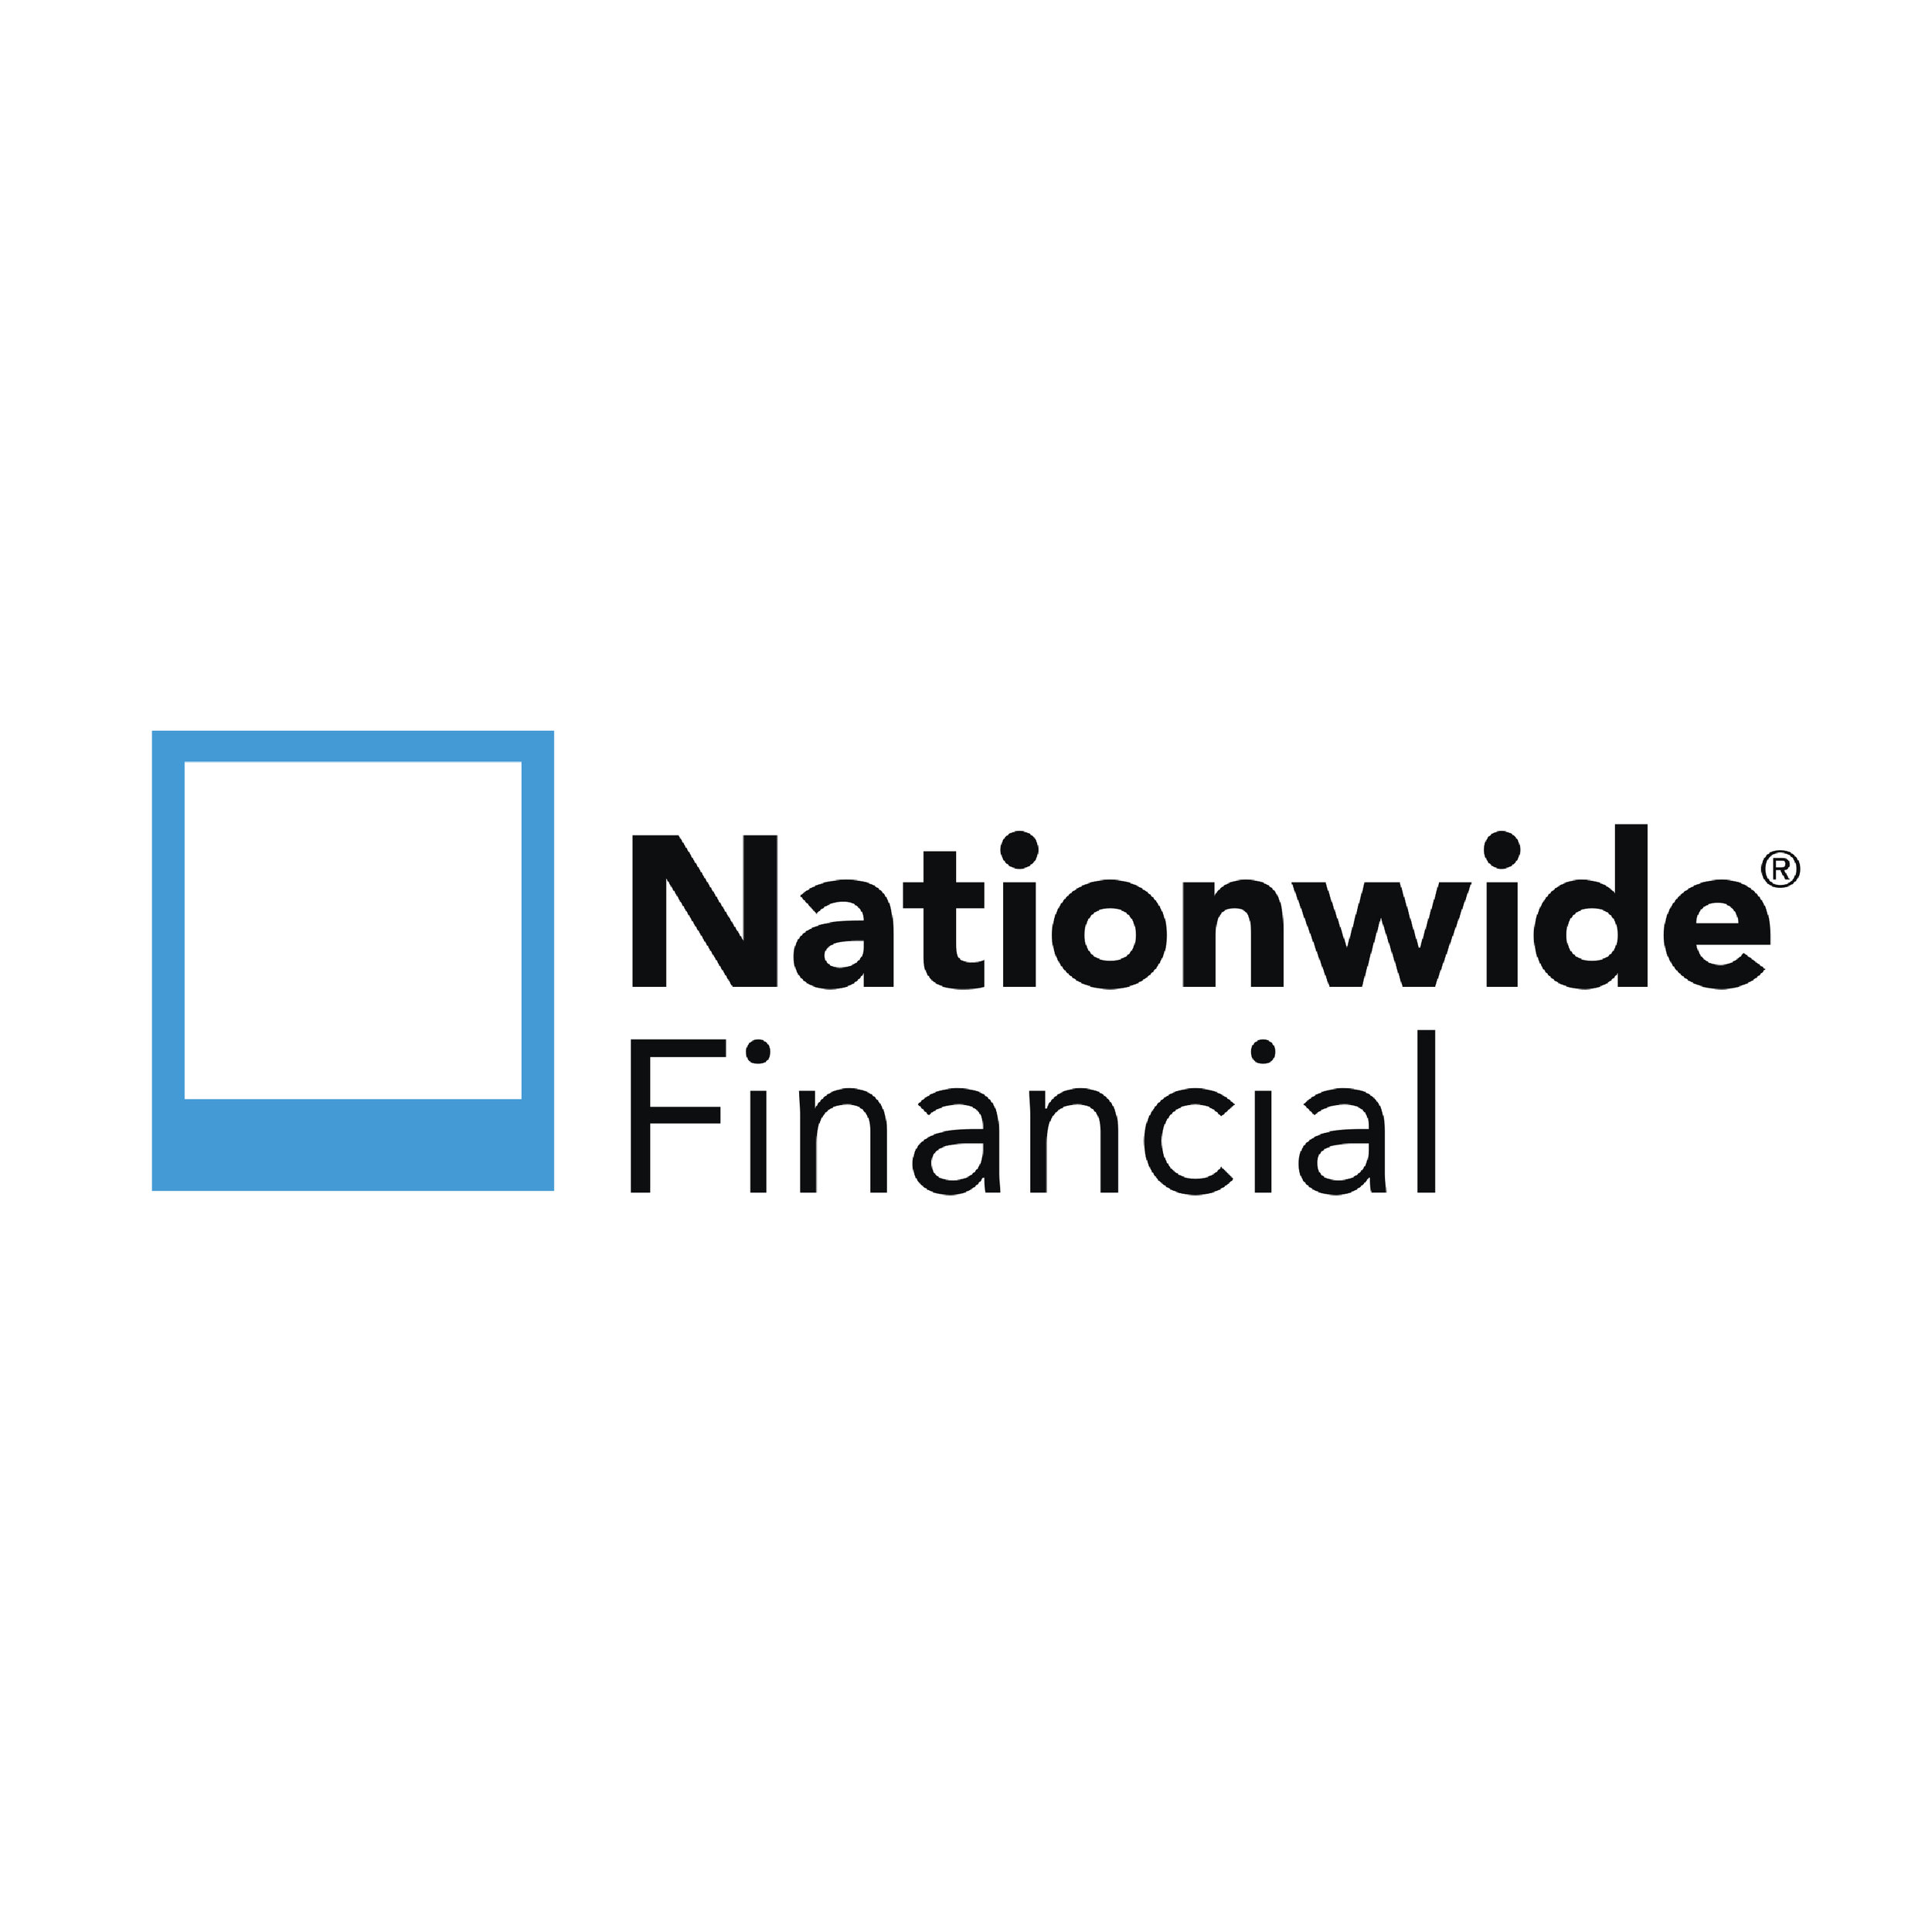 Nationwide Financial.jpg